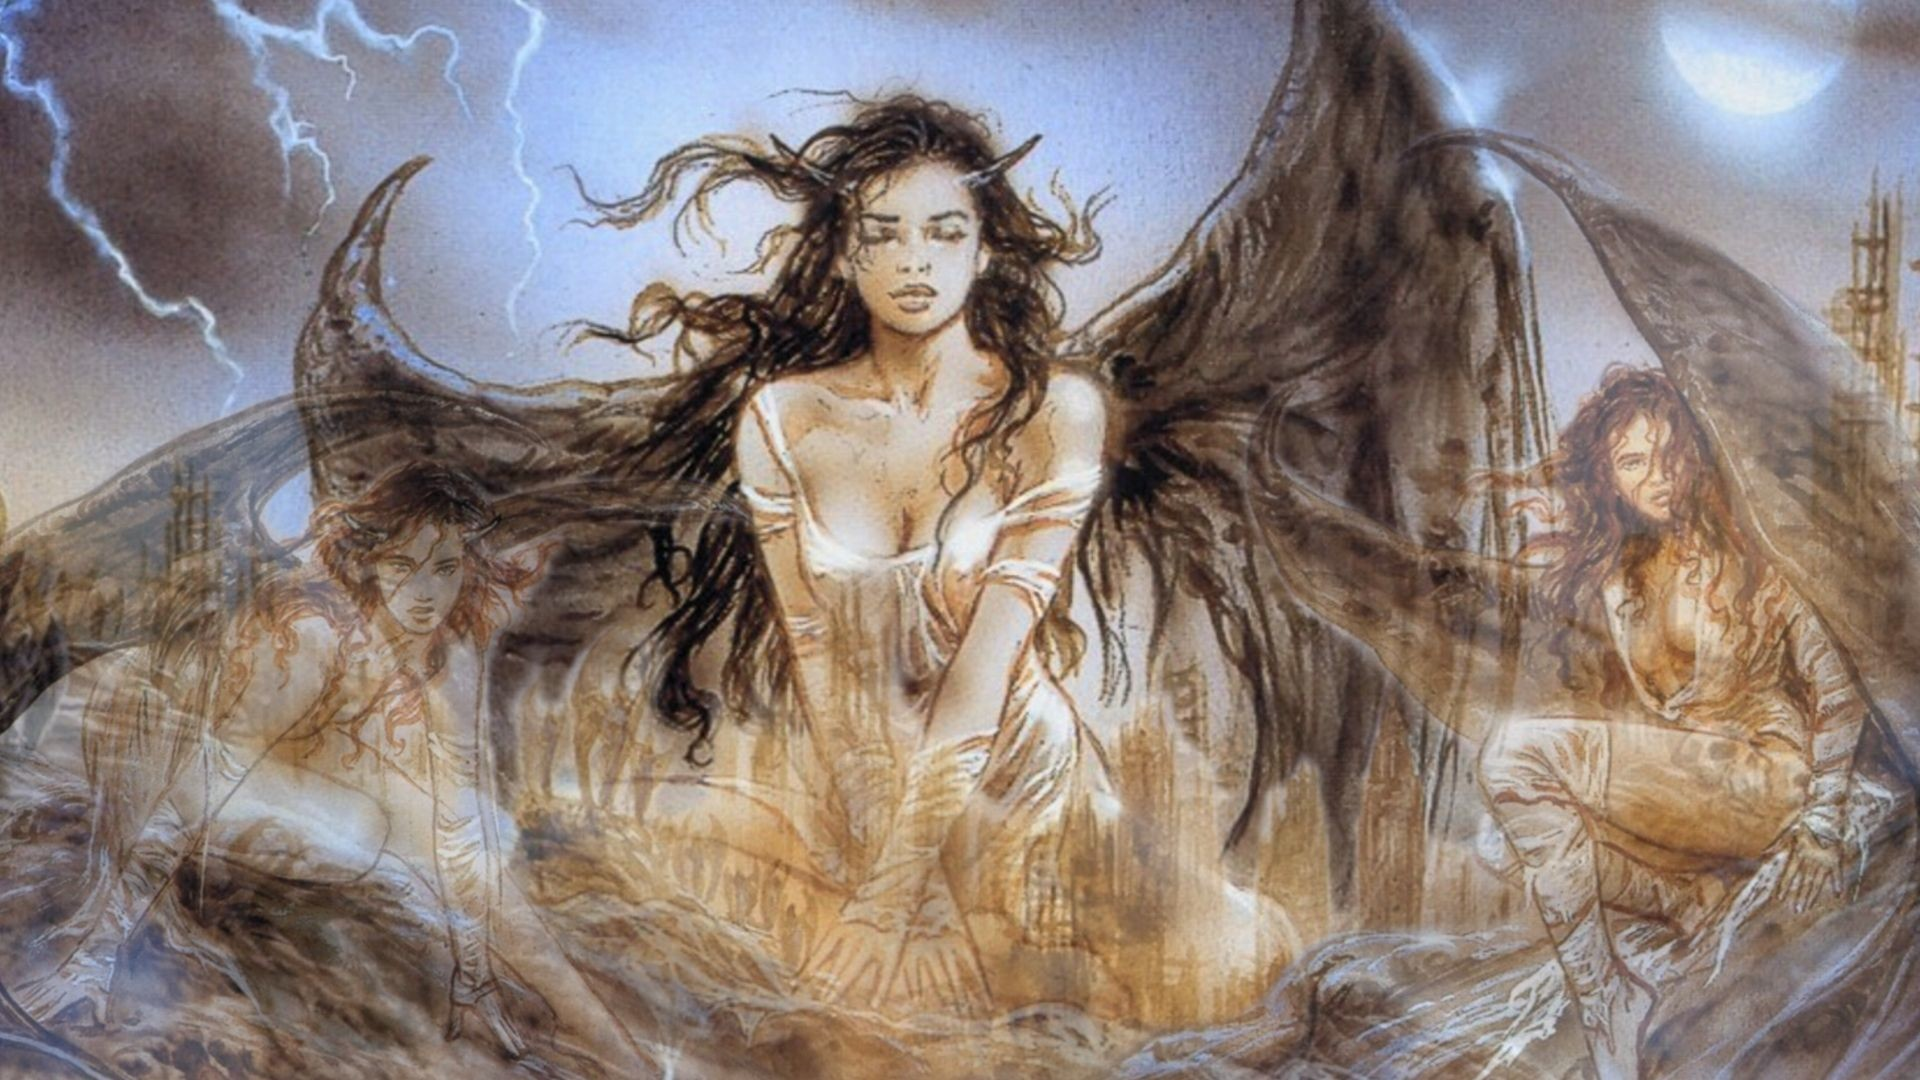 Res: 1920x1080, luis royo prohibited book - Google Search